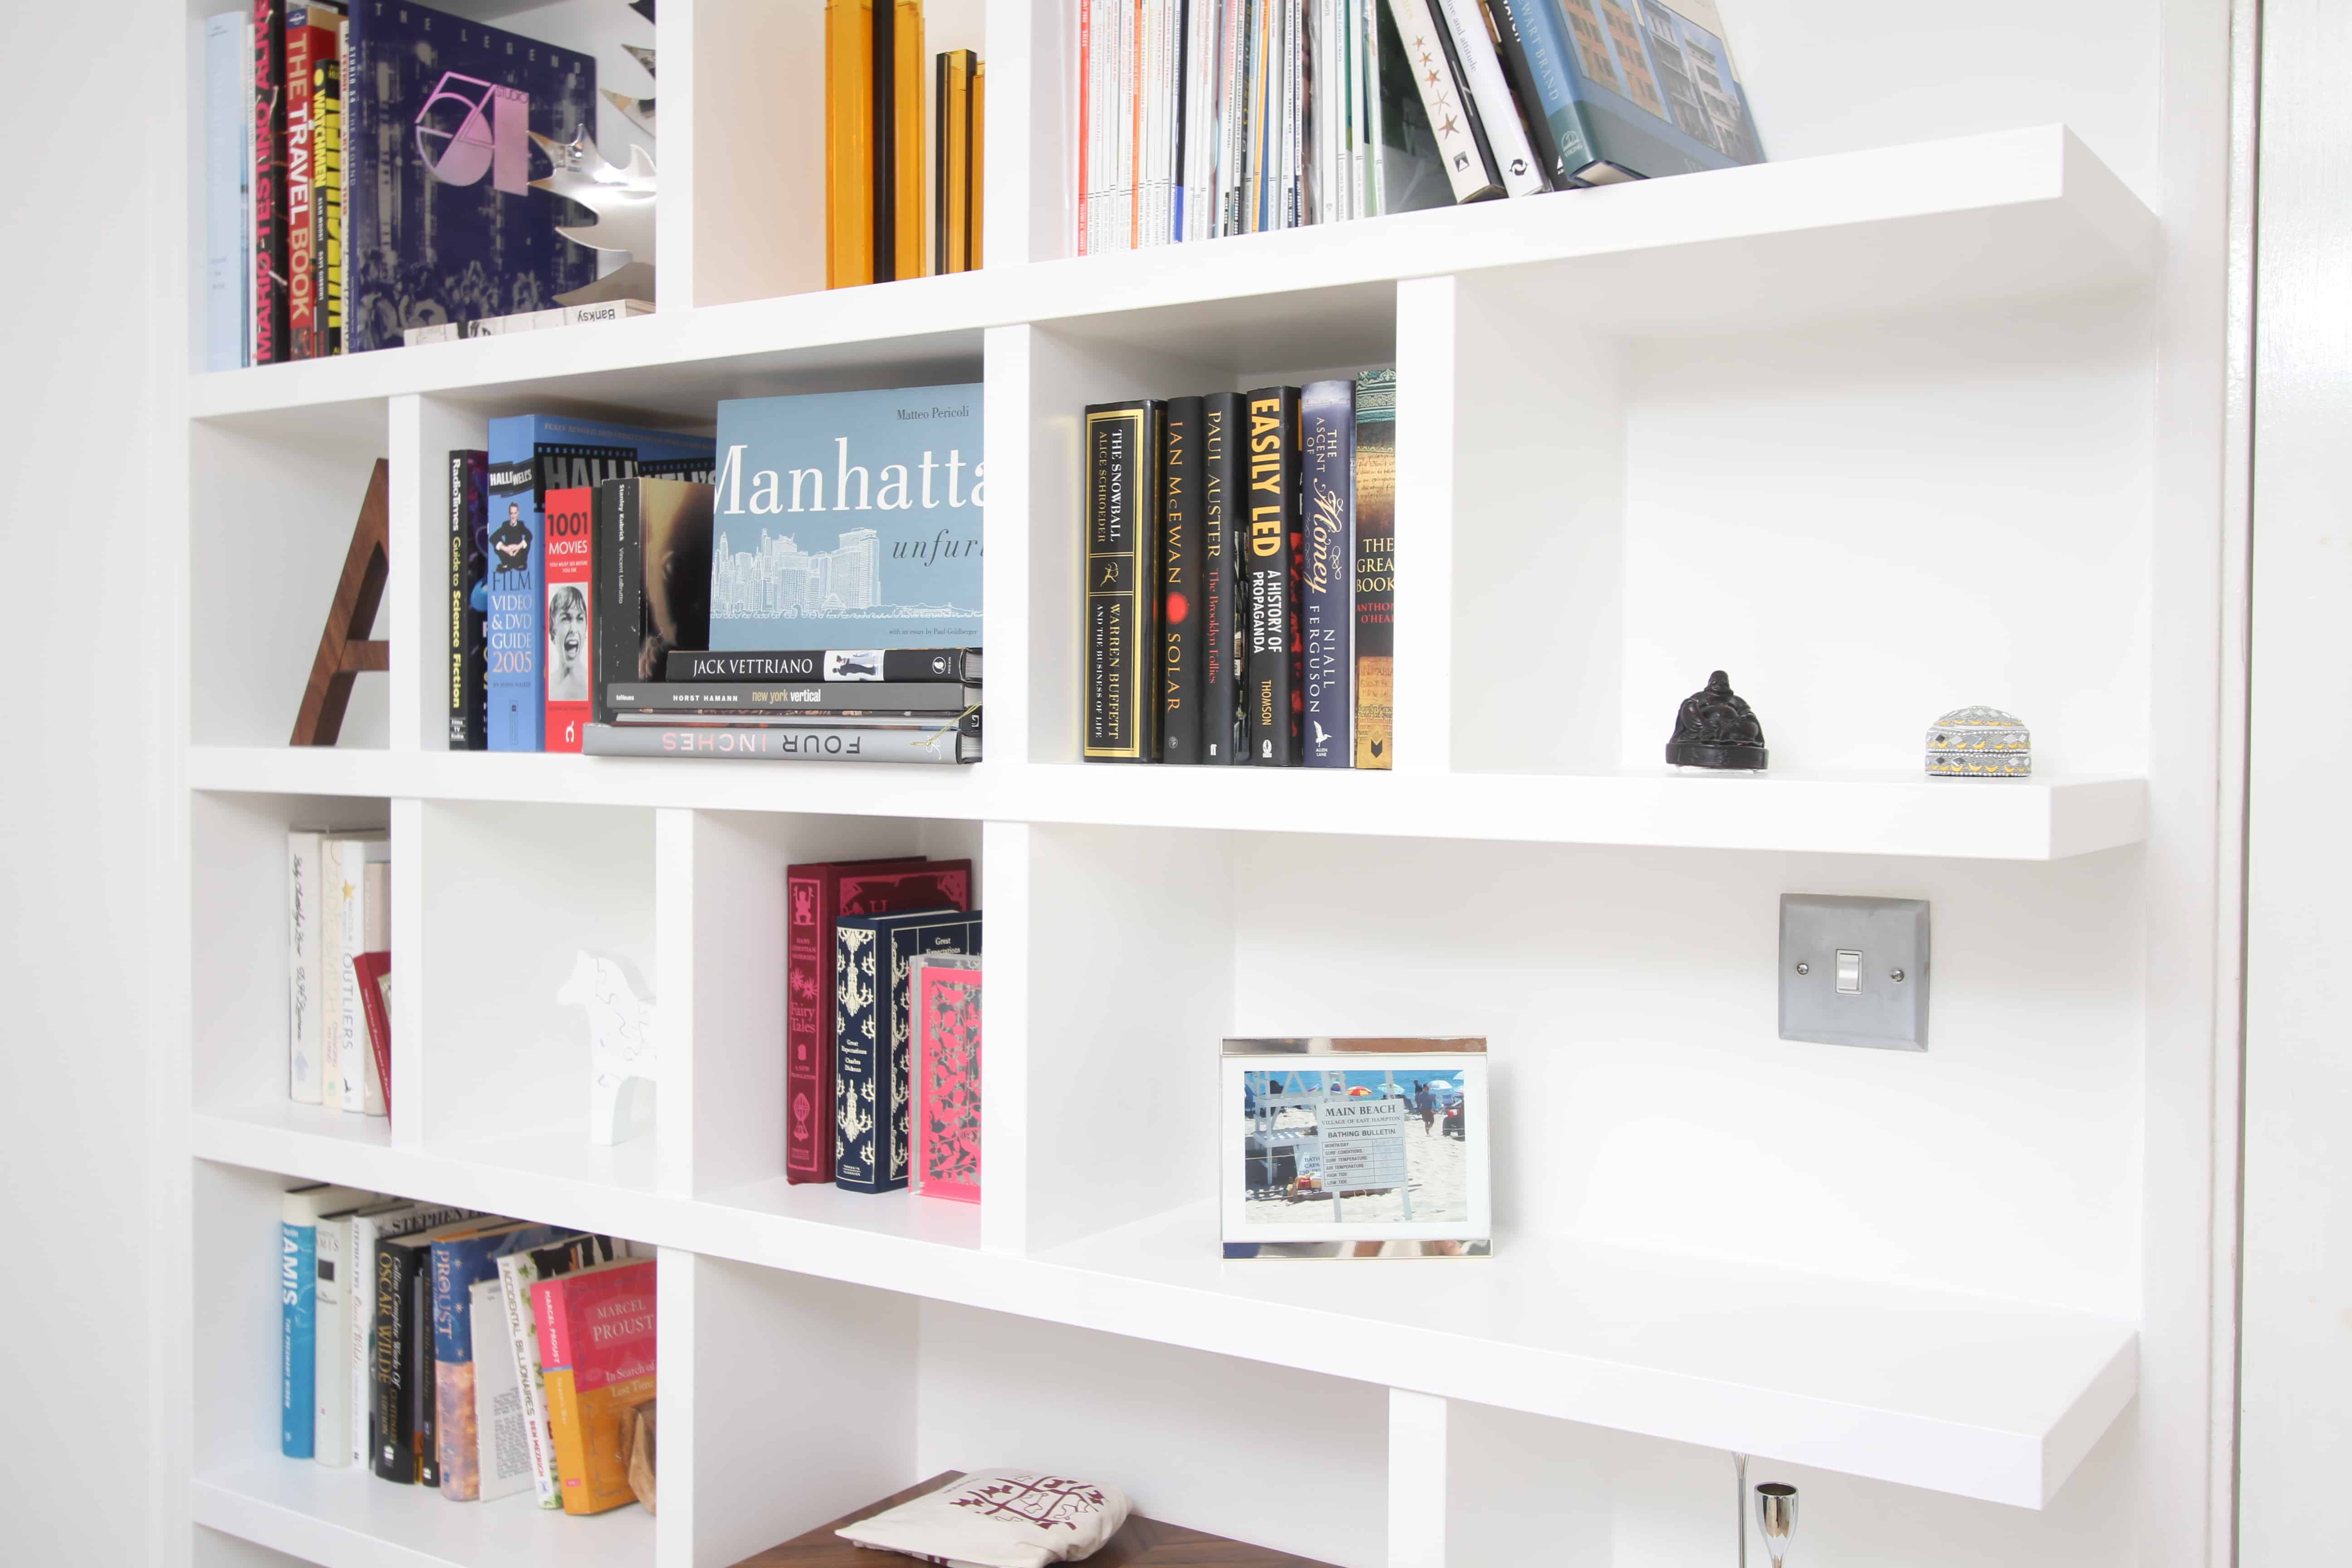 Small Bedroom Shelving Ideas Part - 27: View Larger Image